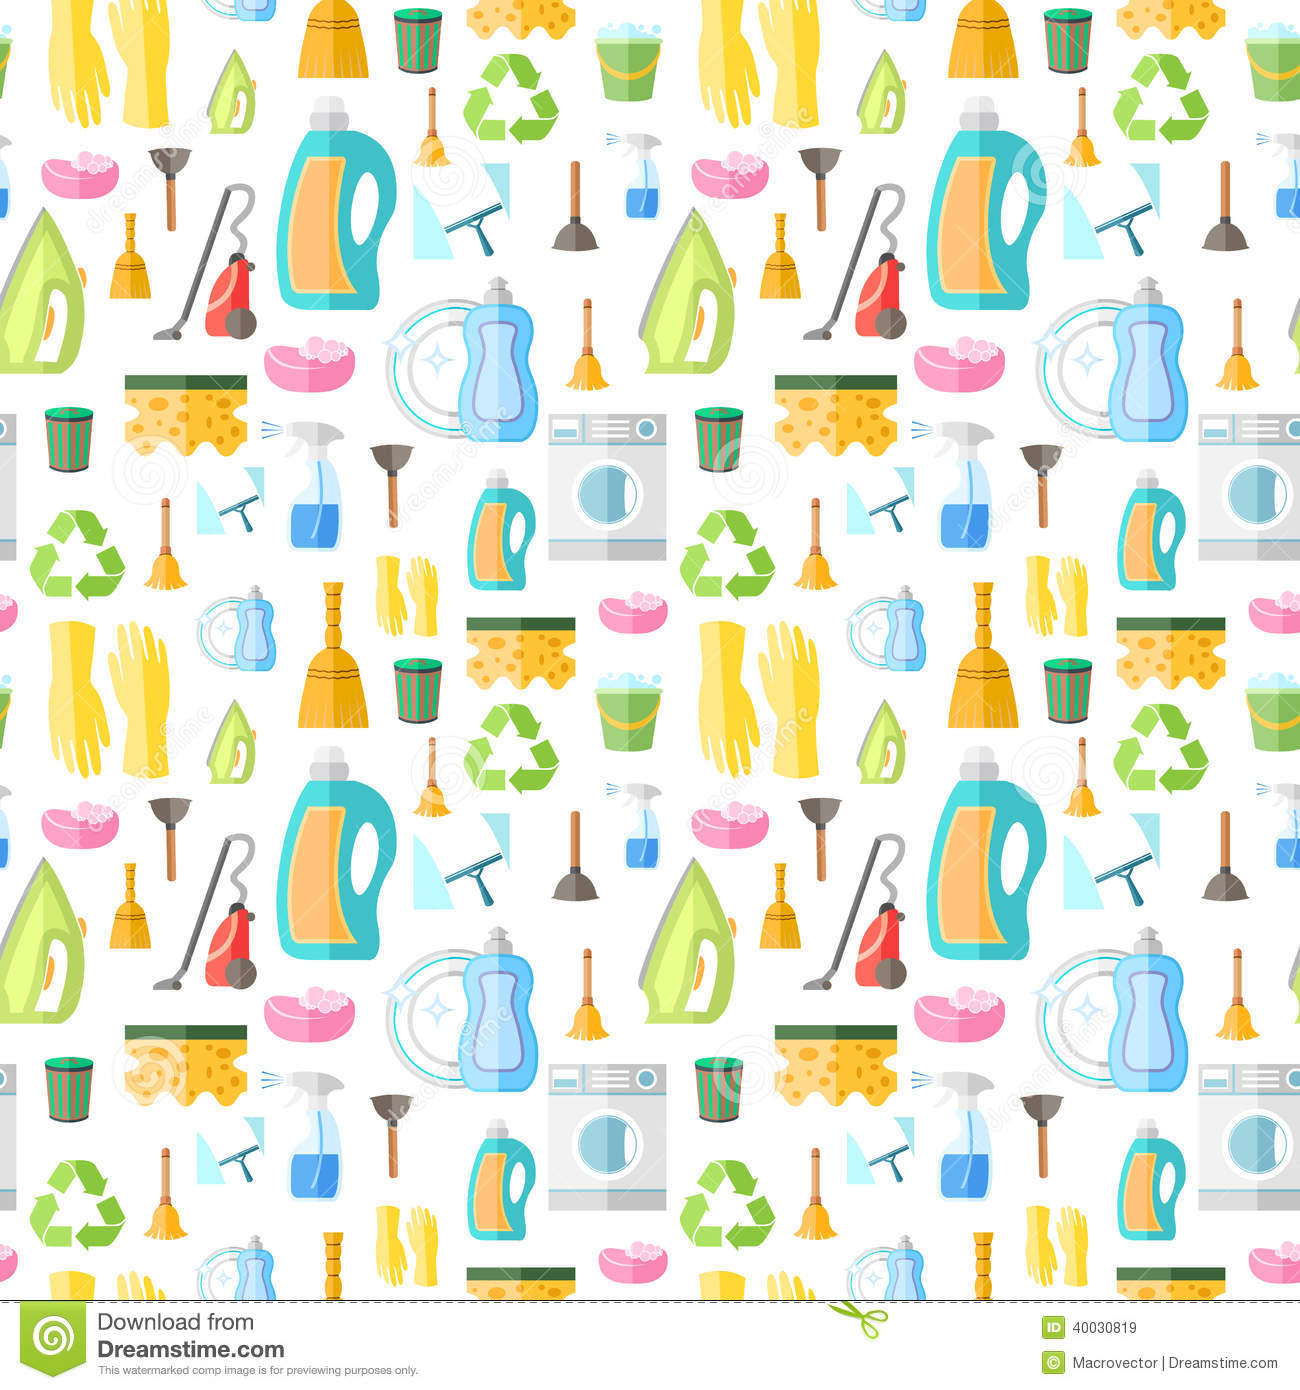 Cleaning washing housework dishes broom bottle sponge icons seamless ...